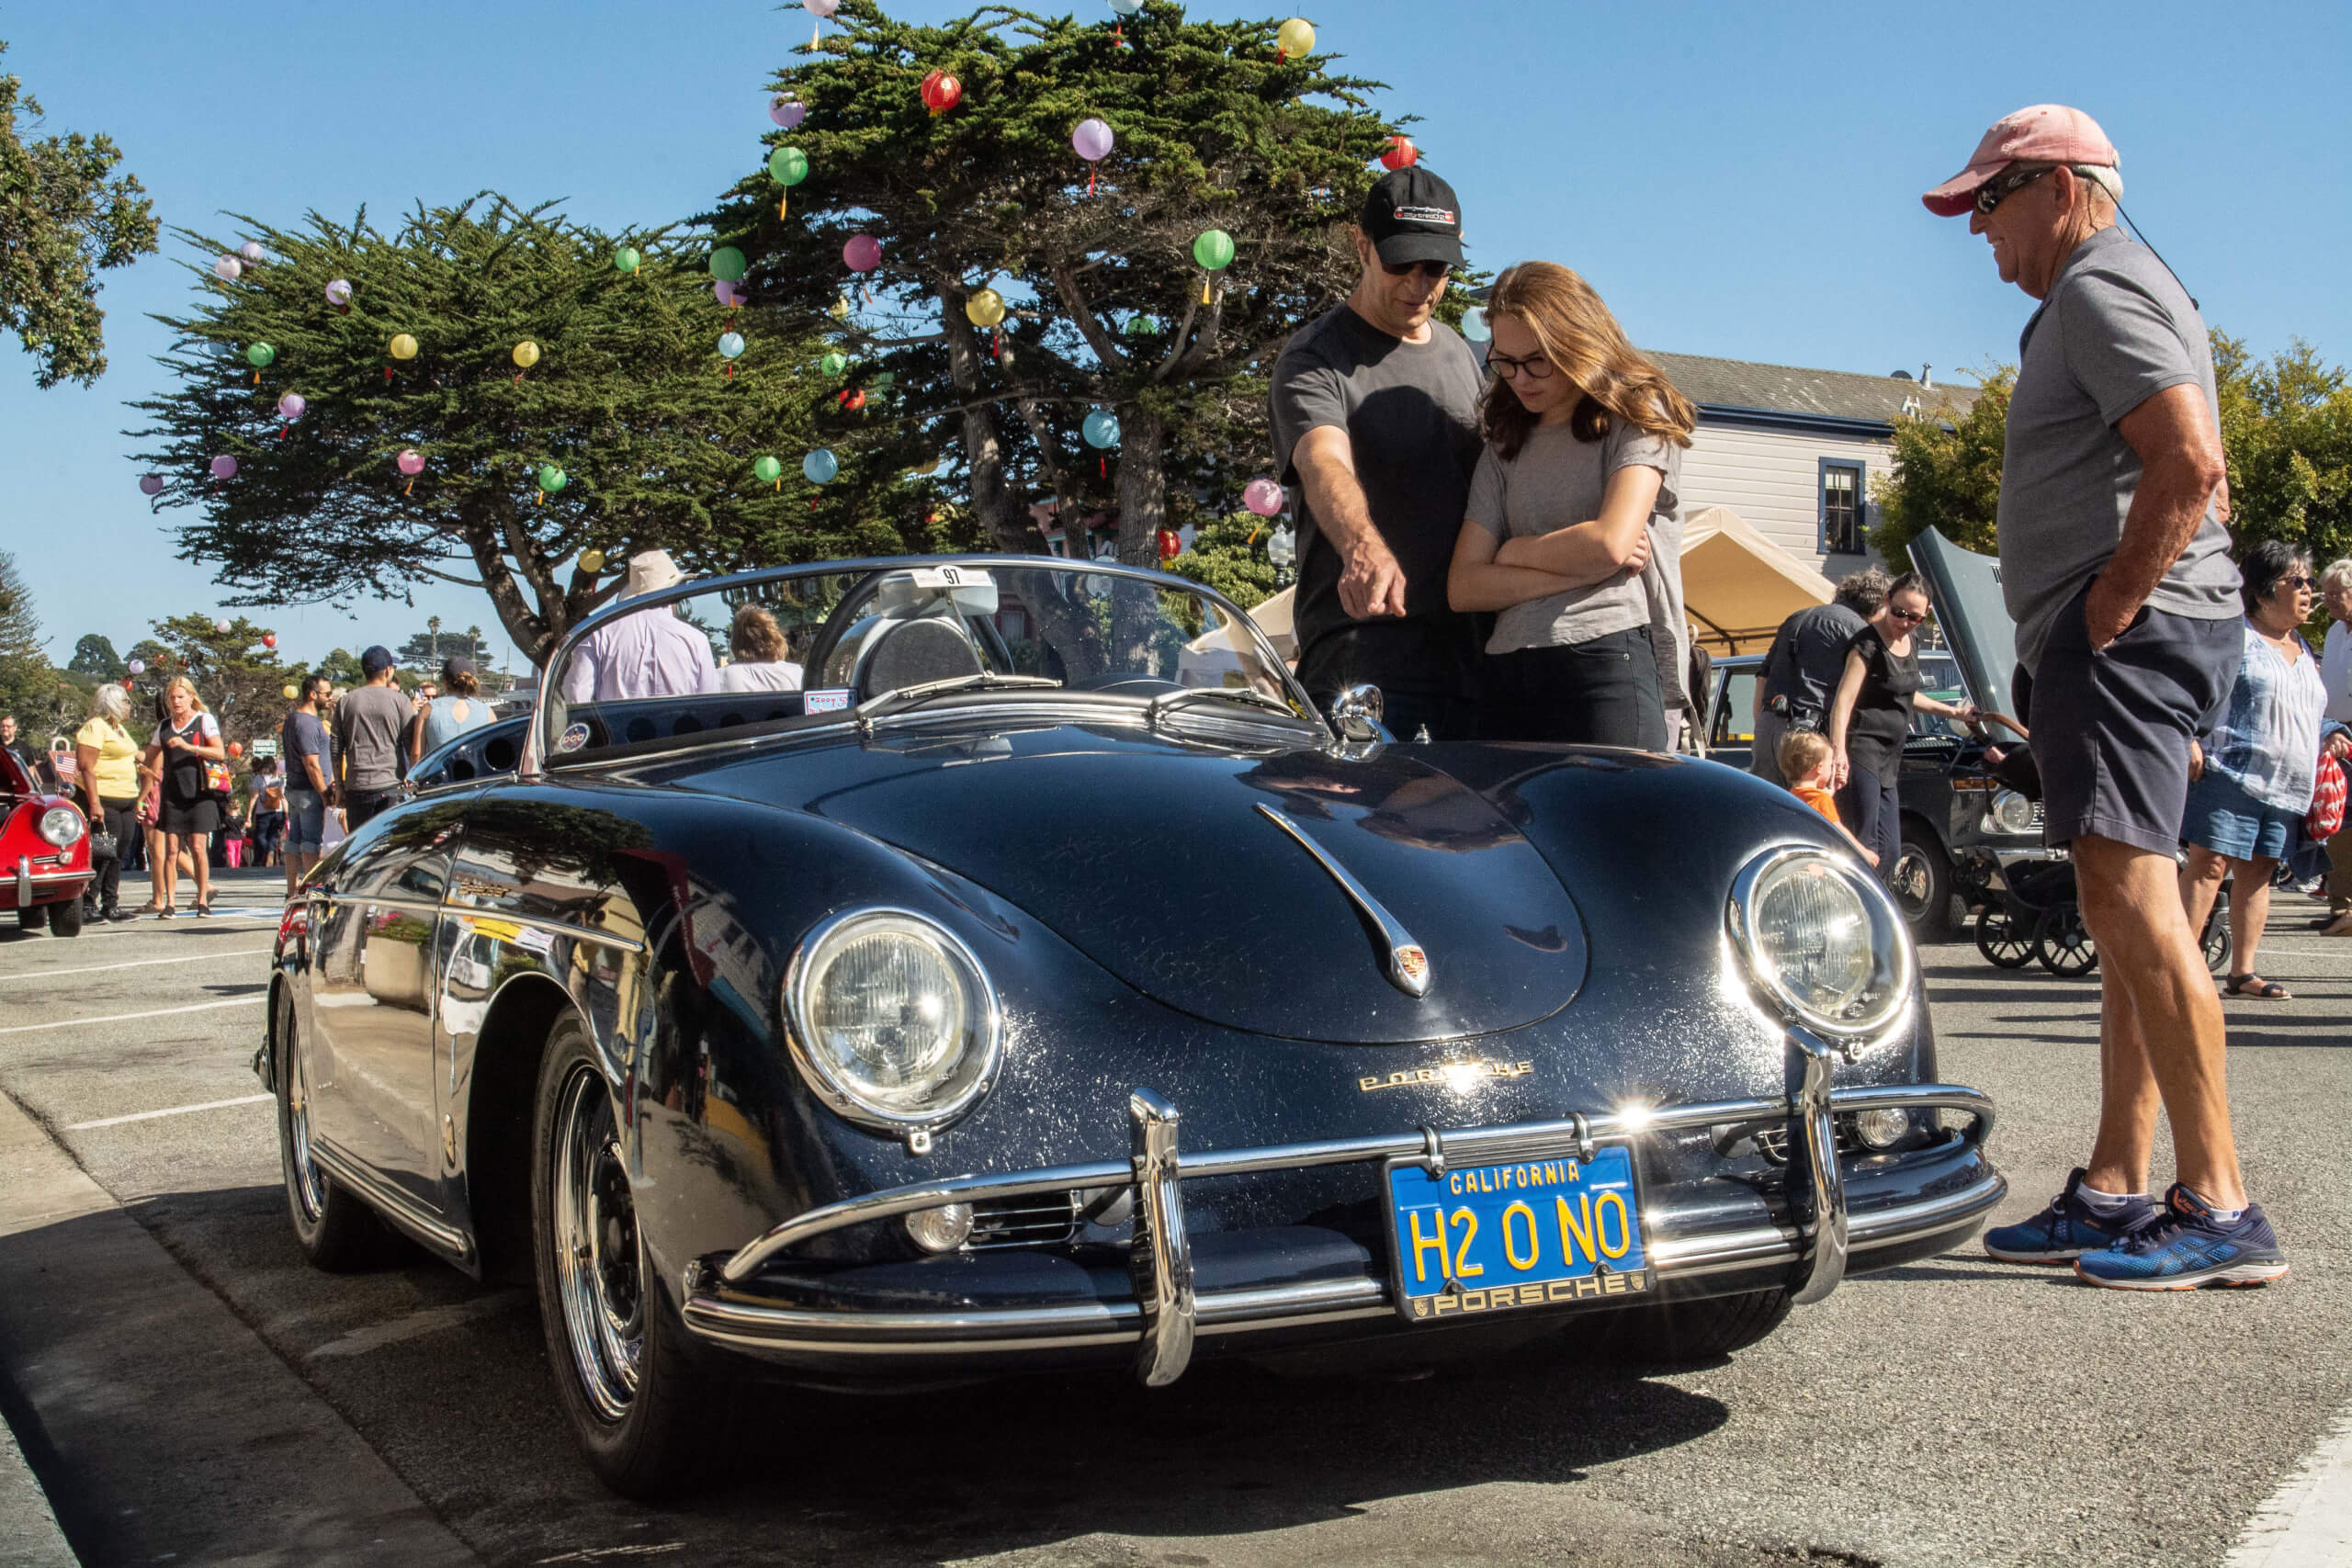 This 1958 Porsche 356A was stolen, recovered and cherished today.